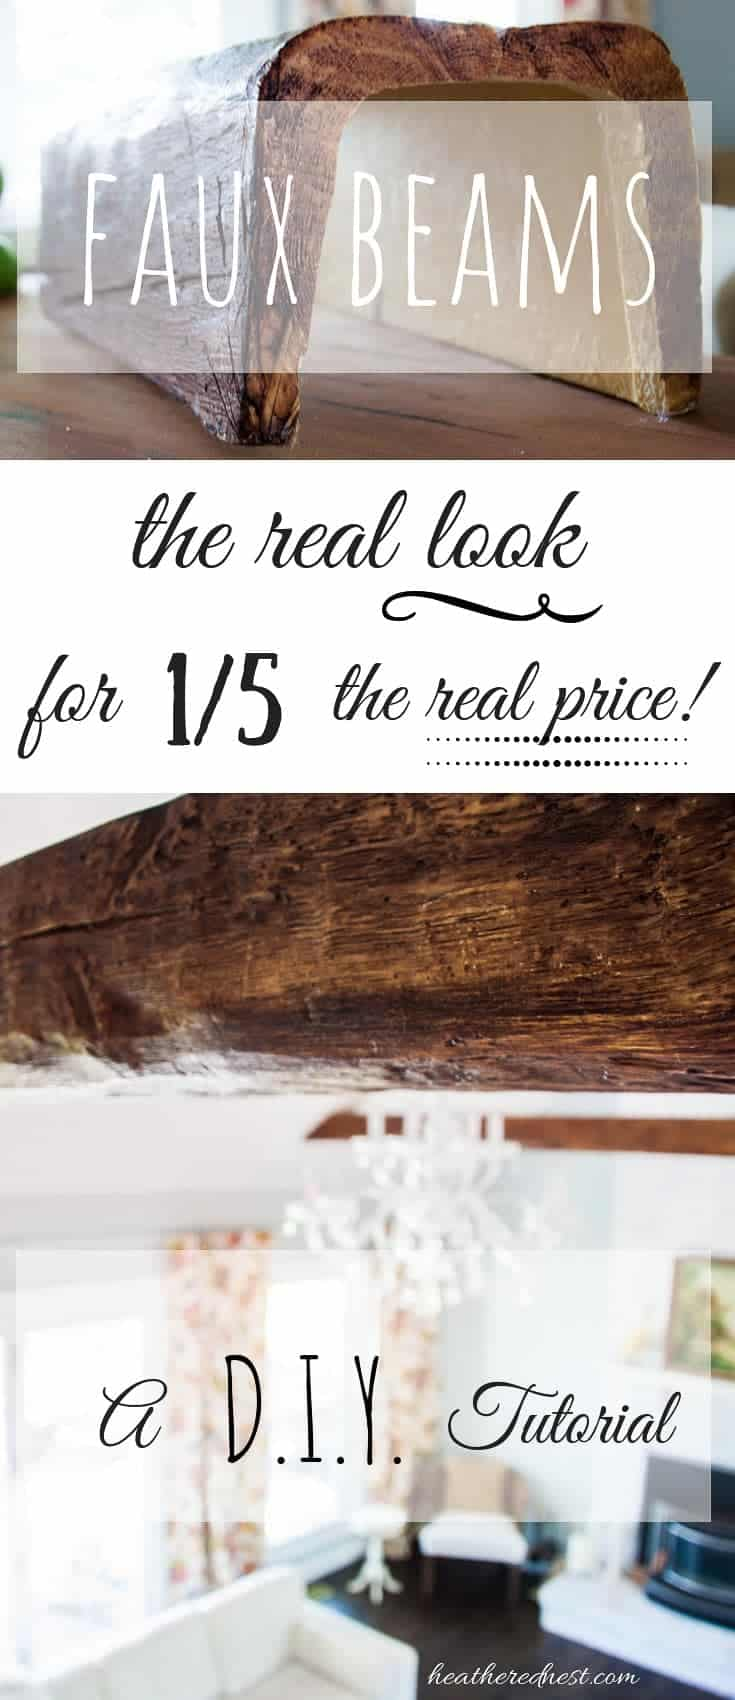 """closeup of a faux wood beam installed in a living room - text overlay \""""the real look for 1/5 the real price\"""""""